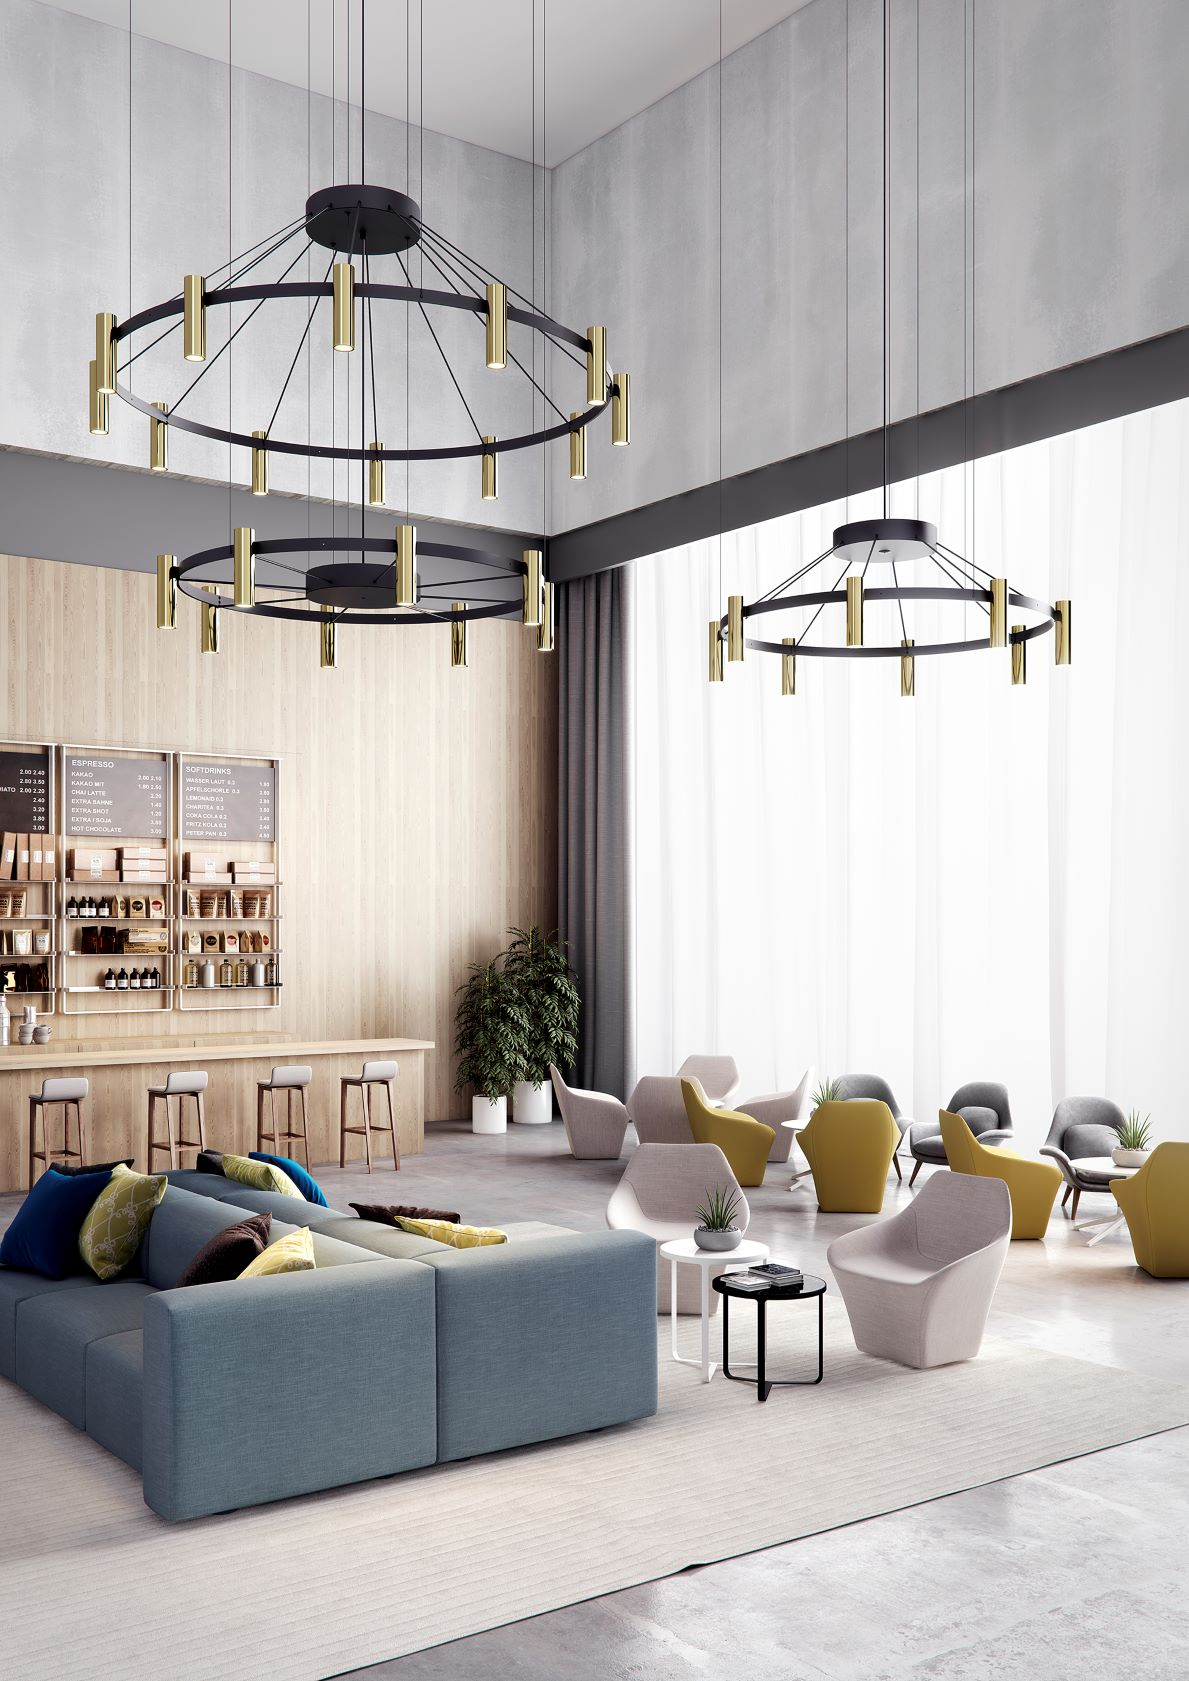 Suspension Chandelier 24 LED - Laverd par Estiluz